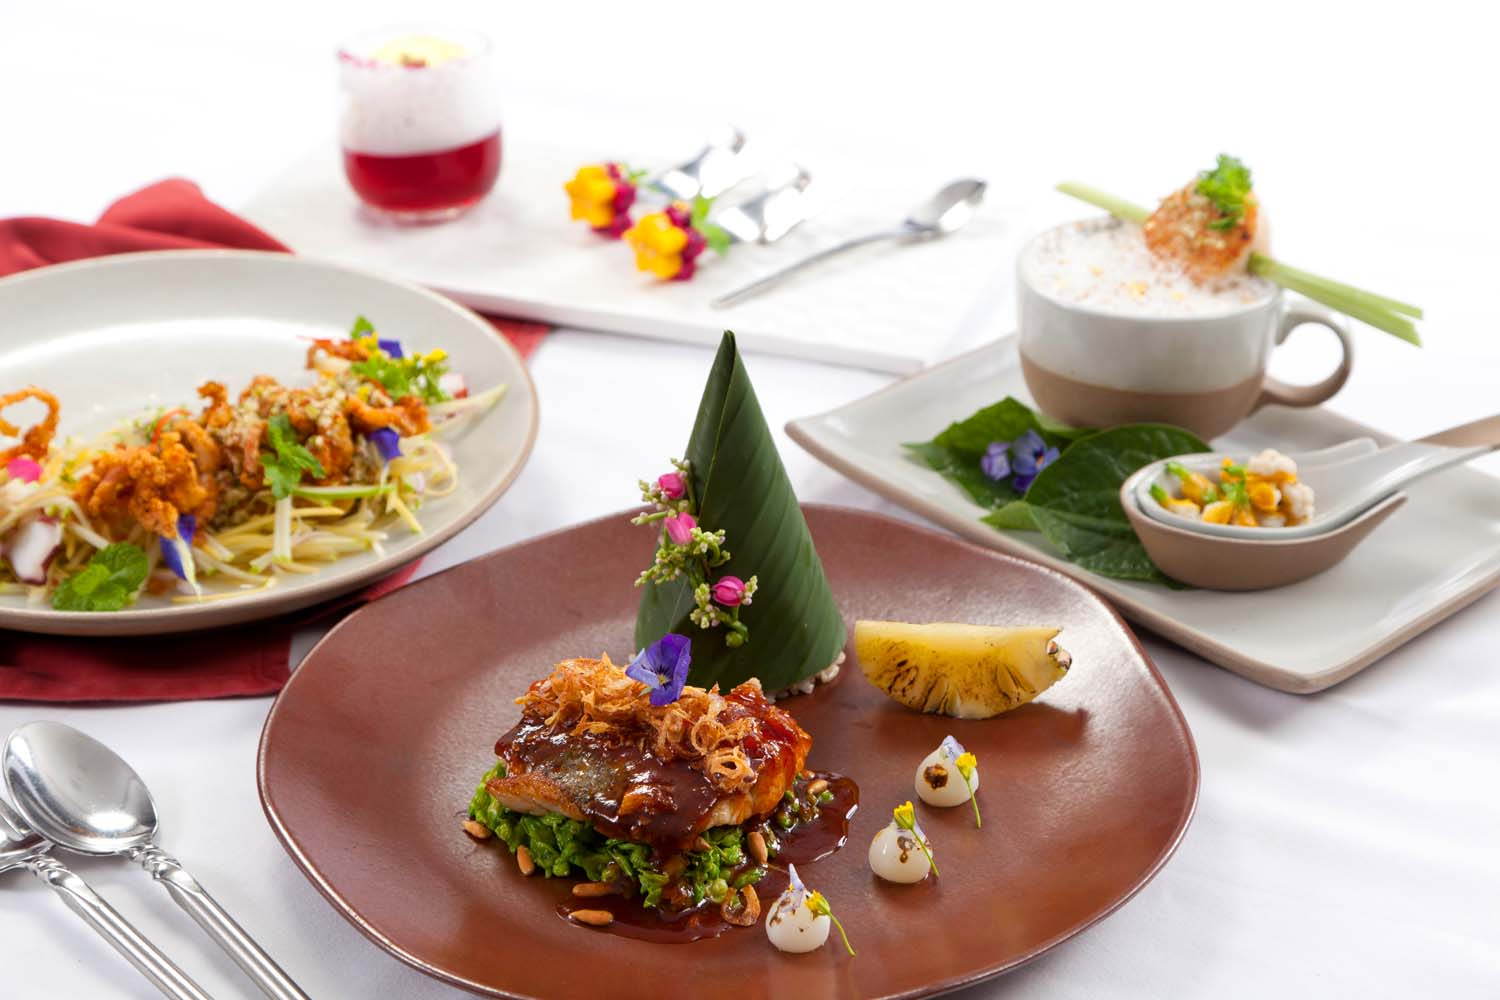 A journey through 20 years of fine gastronomy & extraordinary dining experiences - Saffron